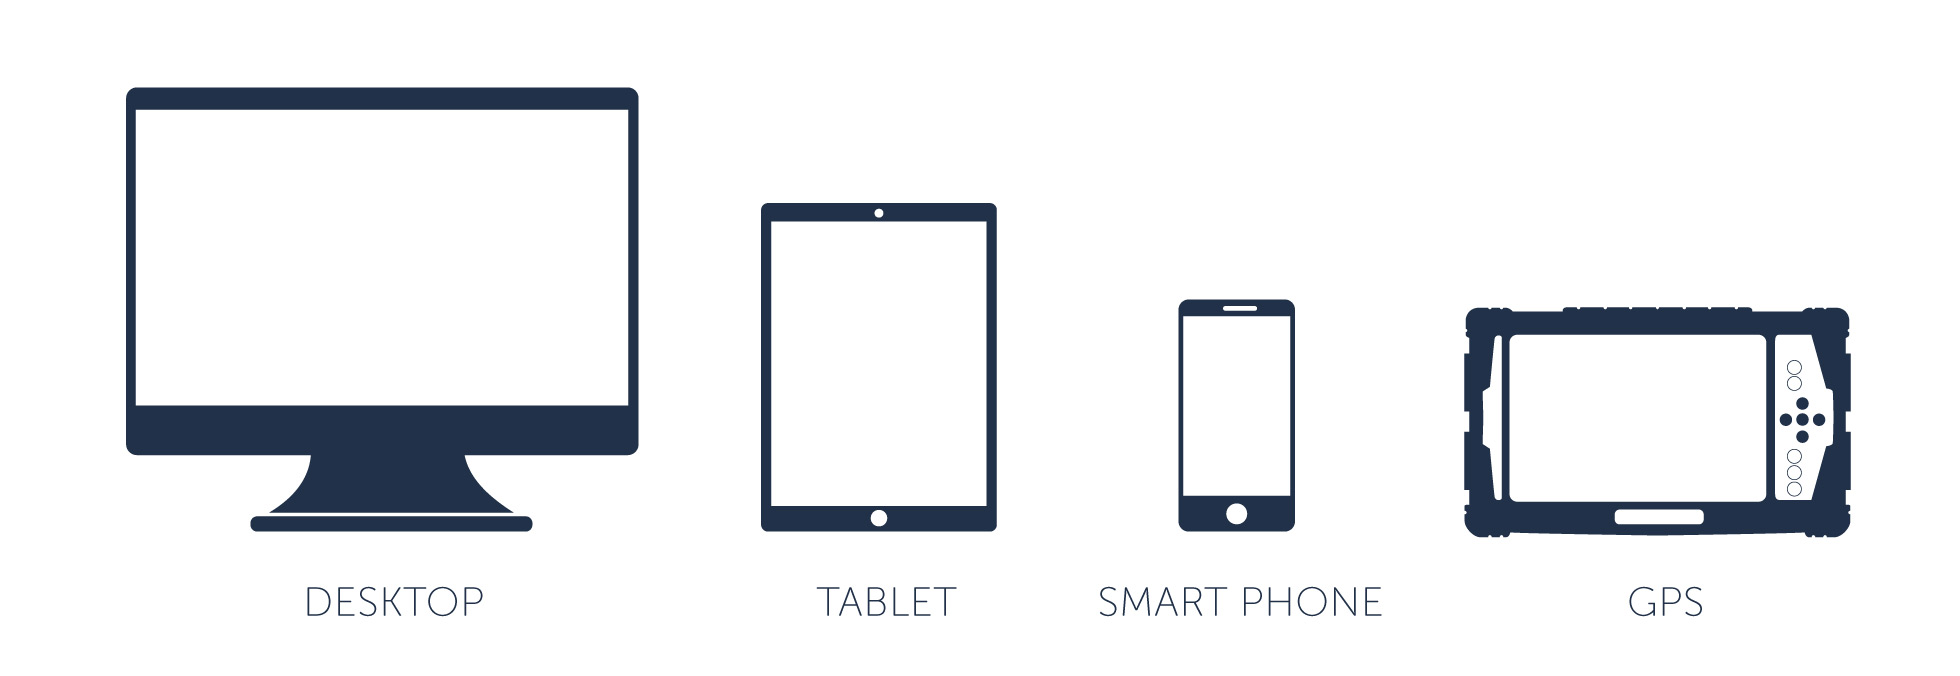 SimpliCity Devices - Desktop, Tablet, Smartphone, GPS